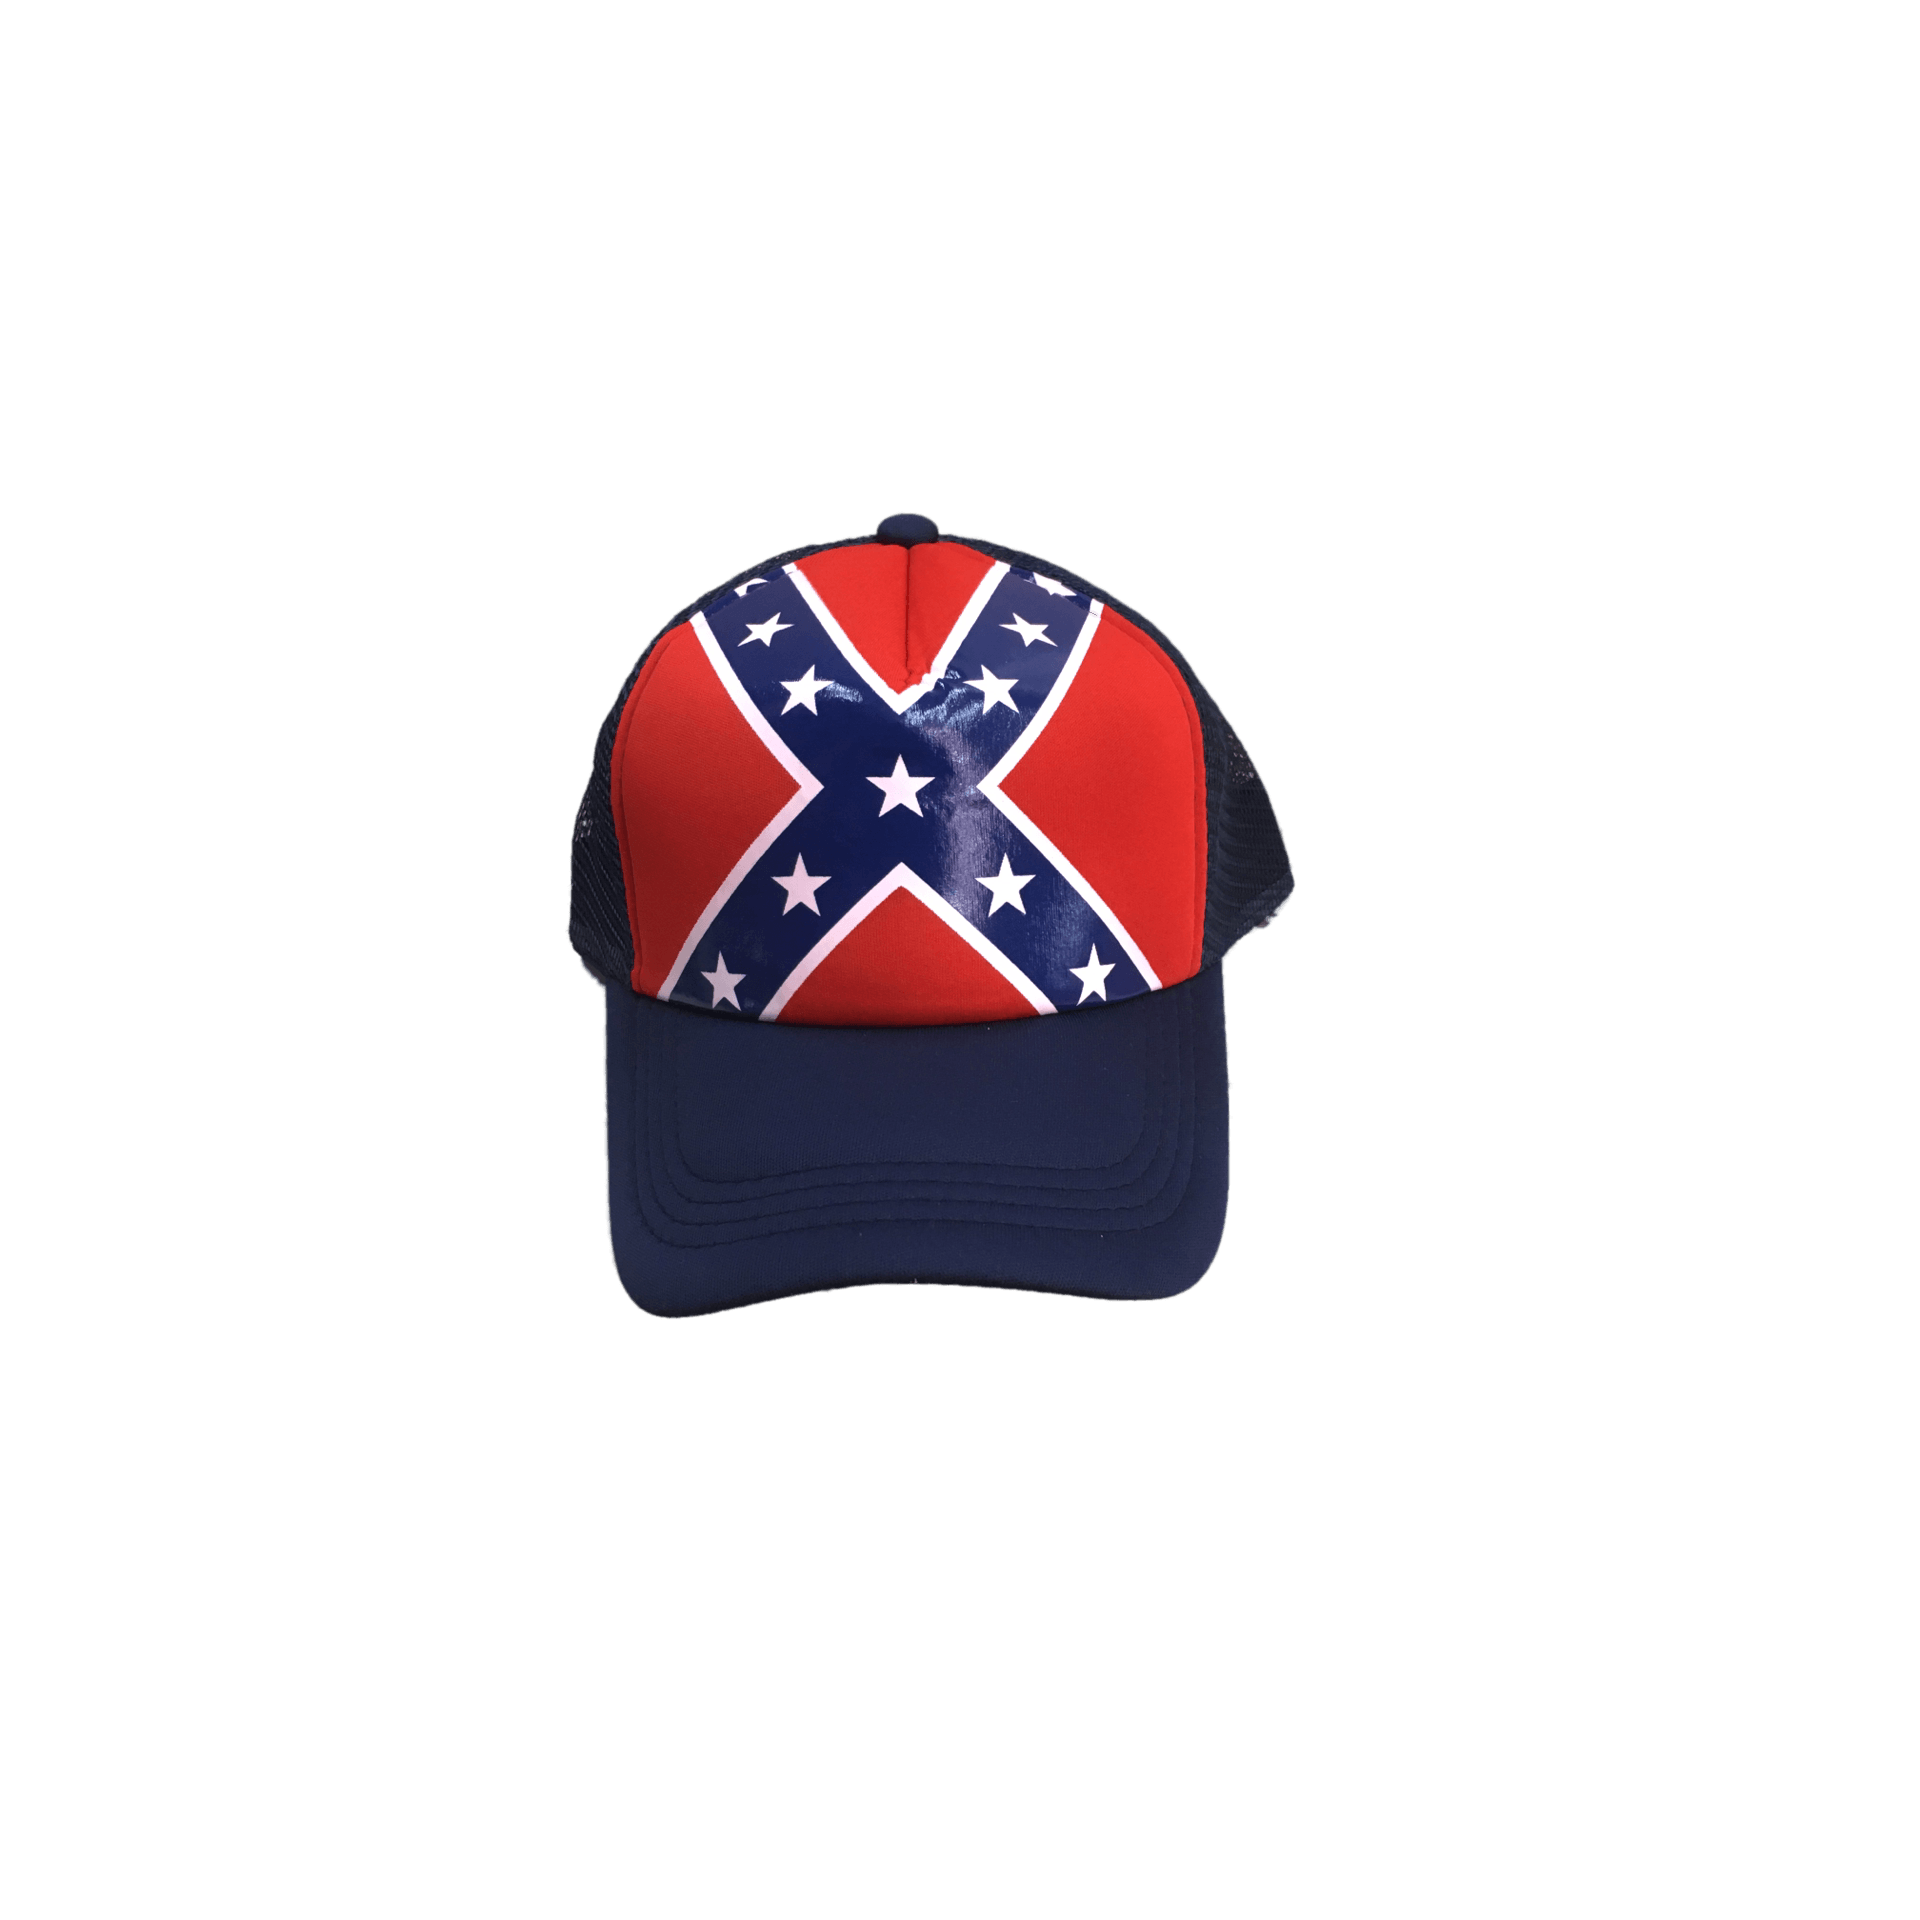 blue-confederate-flag-trucker-hathatthe-dixie-shop-14558249.png v 1536521065 f873ab950e38